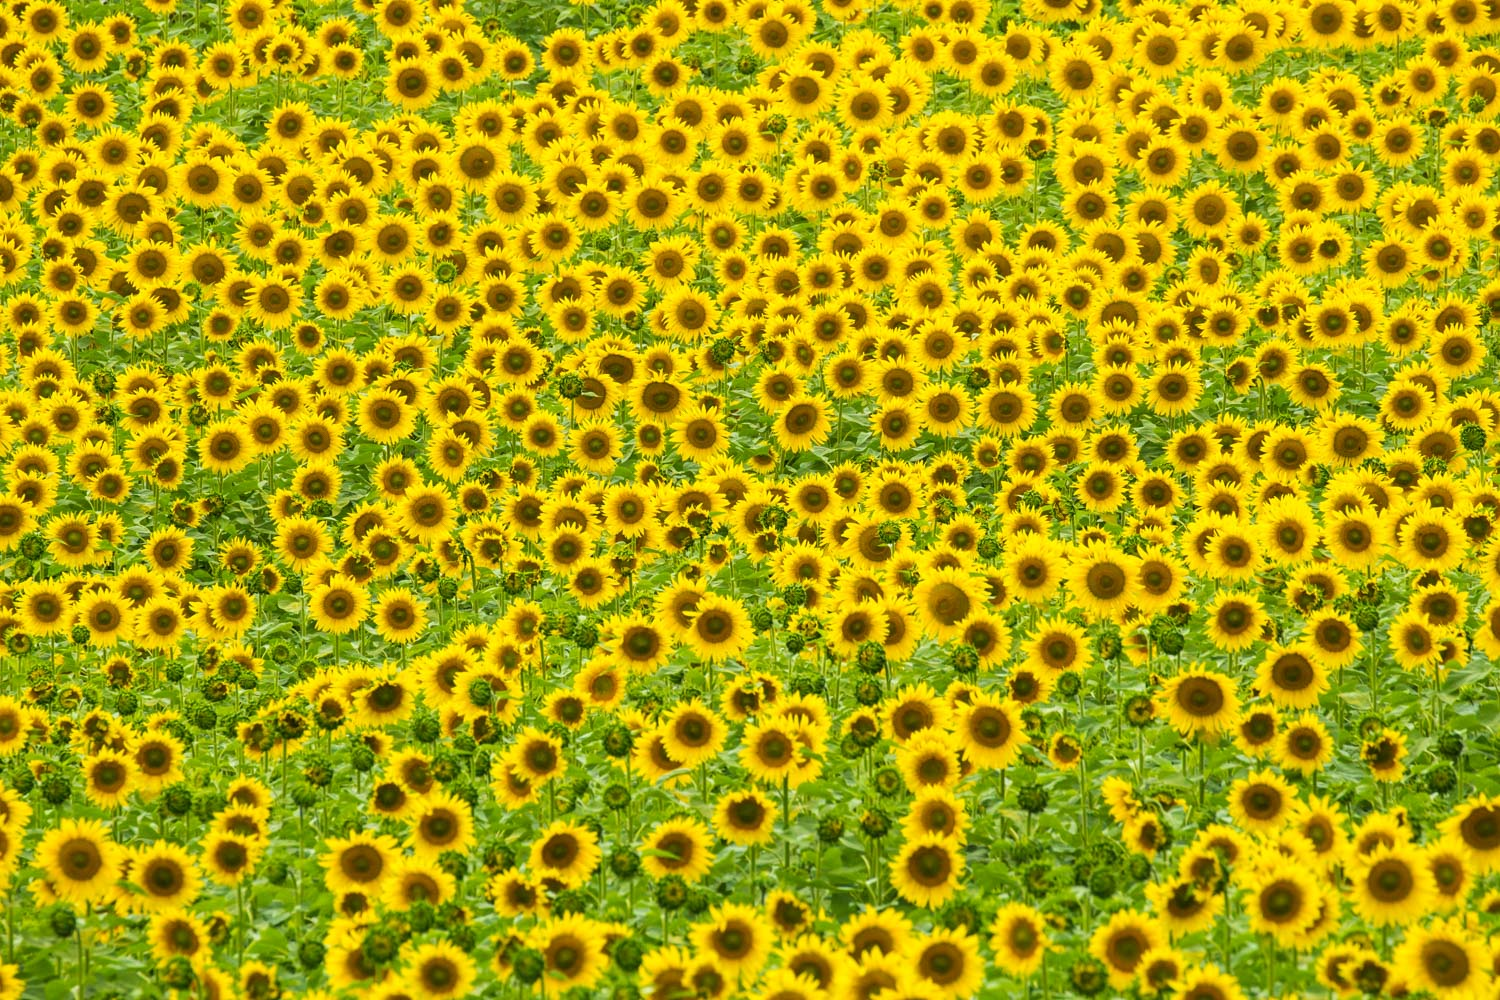 Symphony of Sunflowers